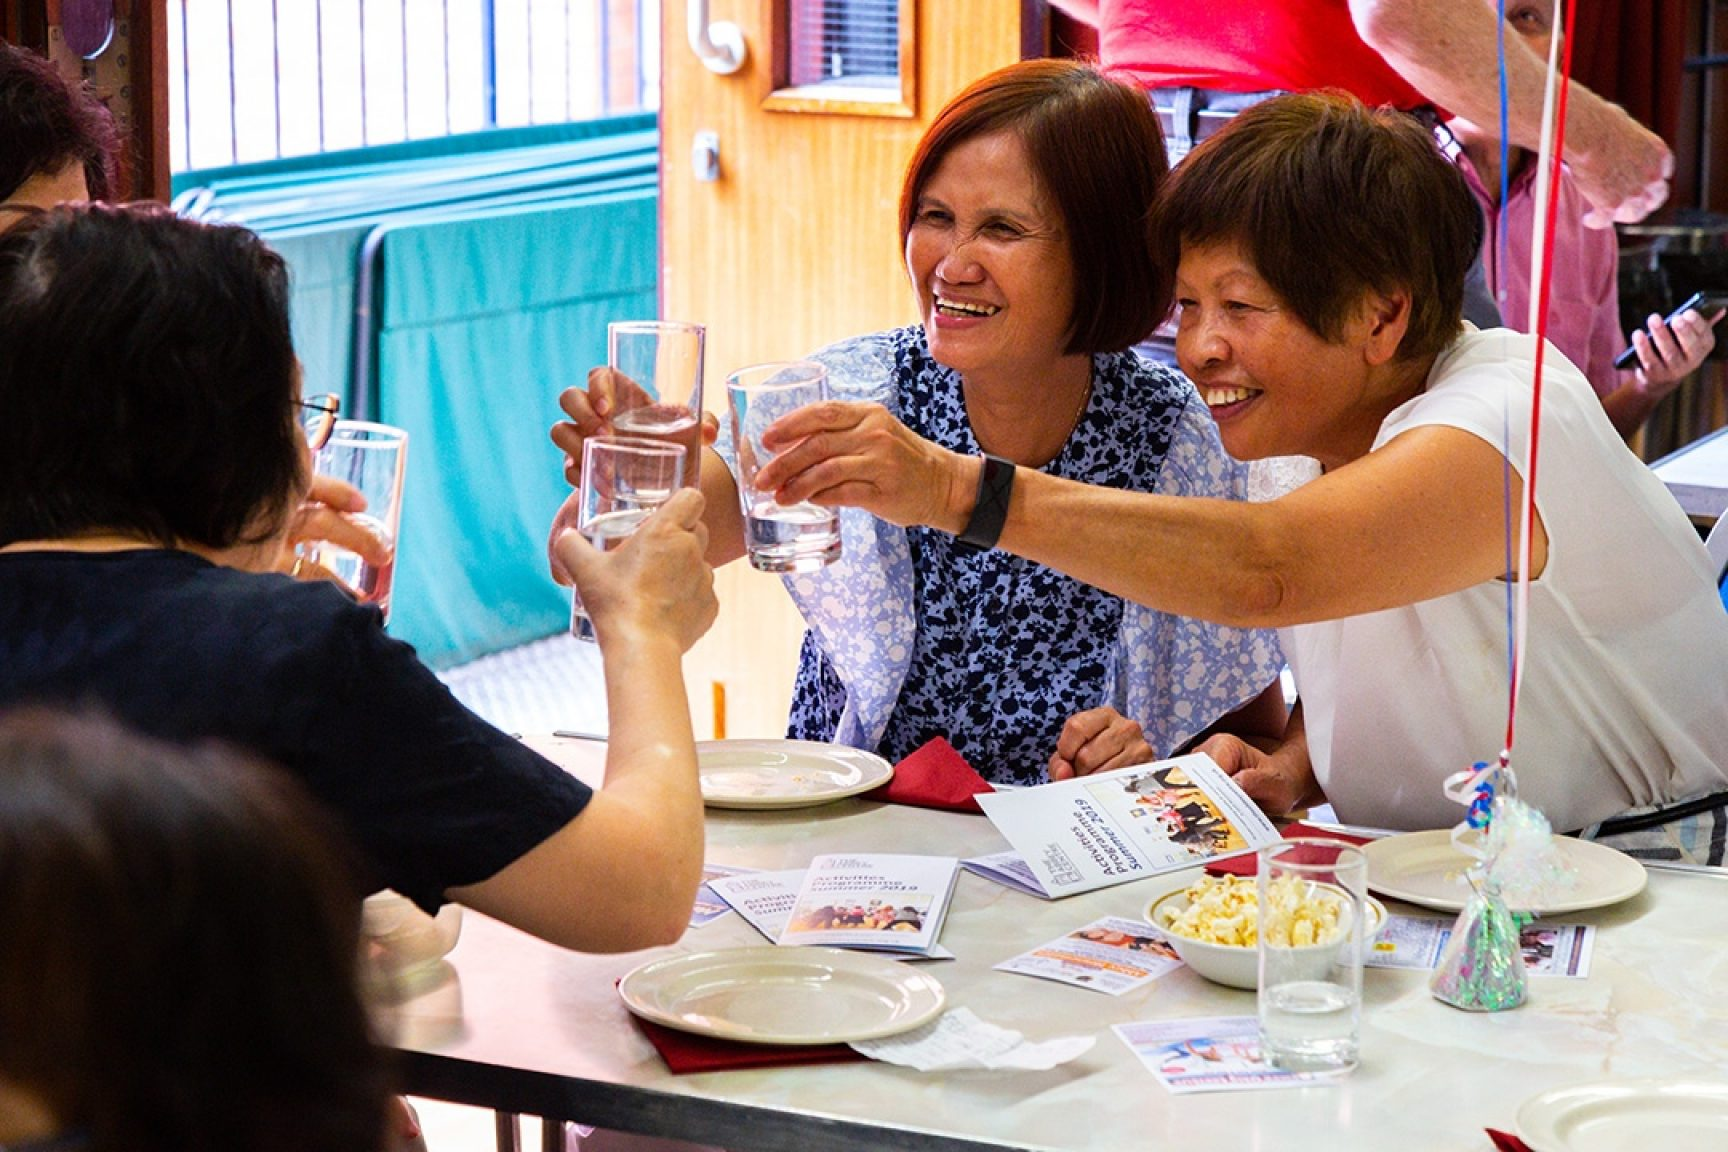 Several women around table  enjoying themselves and raising a glass at a fun community event.